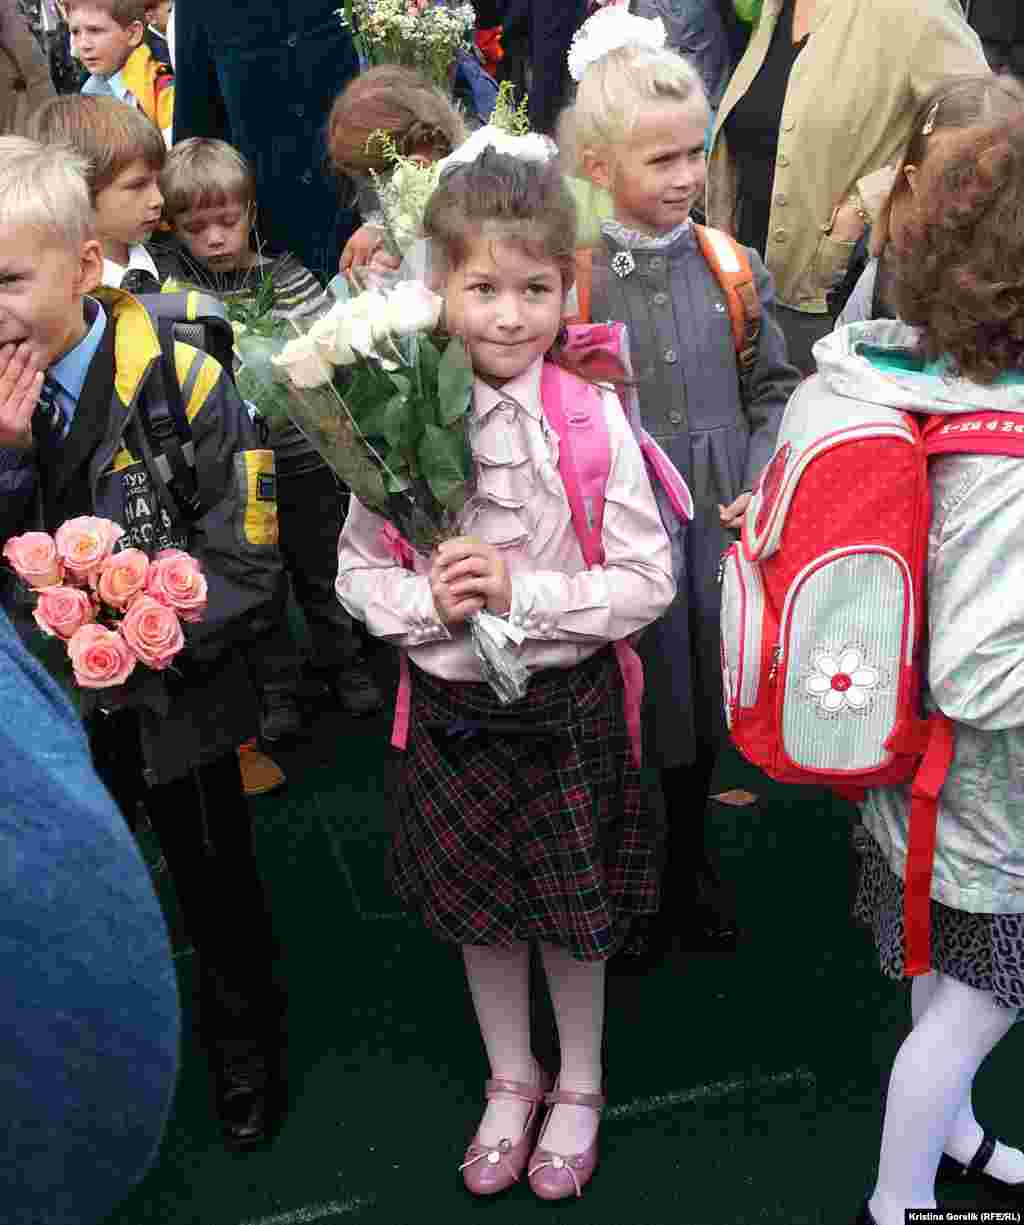 Skirts or ties are in vogue for these kids in Moscow.